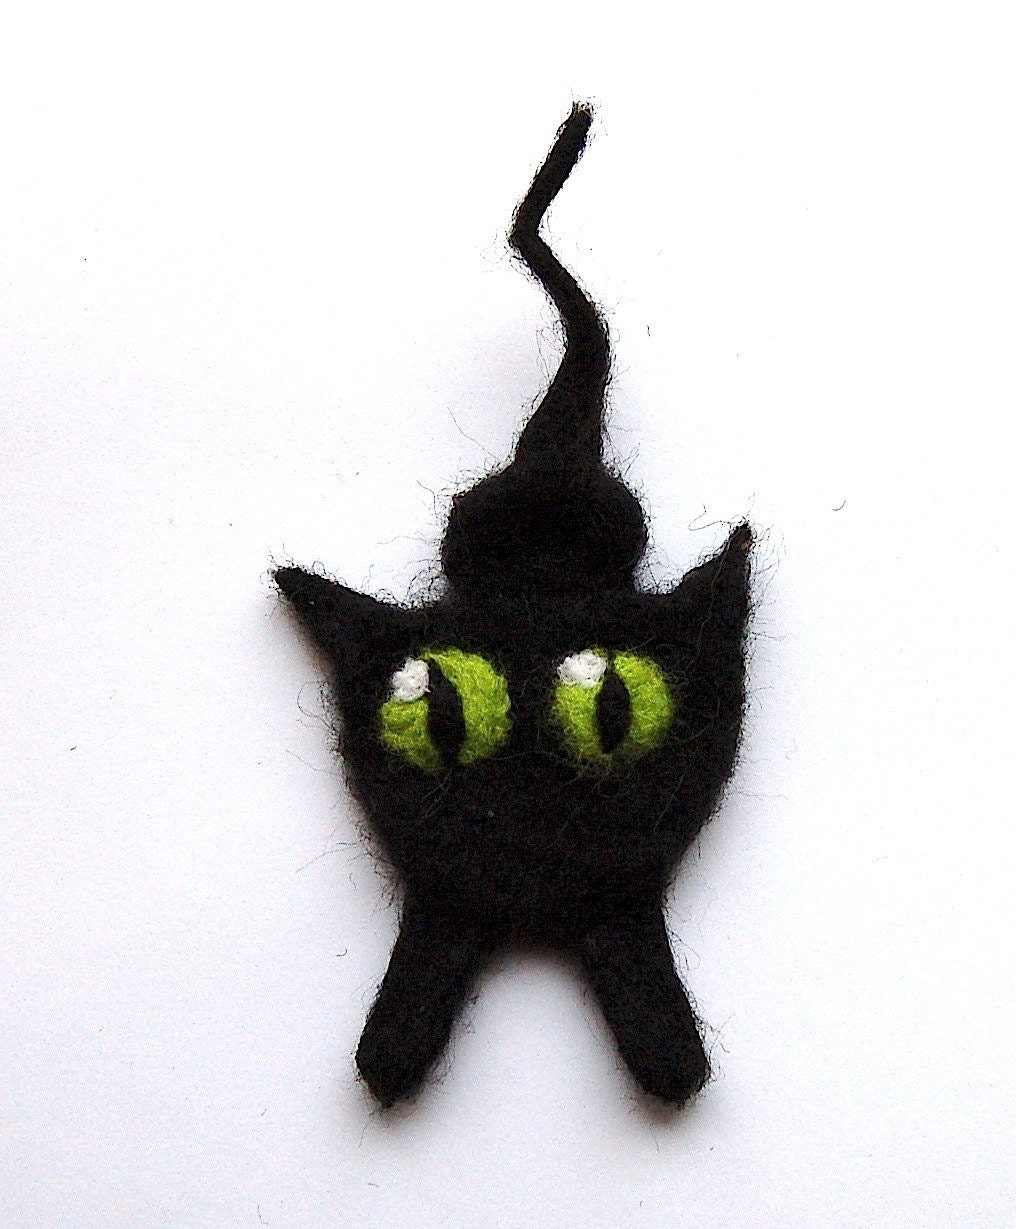 Felted cat brooch, needle felted wool cat, black with green eyes - DeKleineKunstenaar